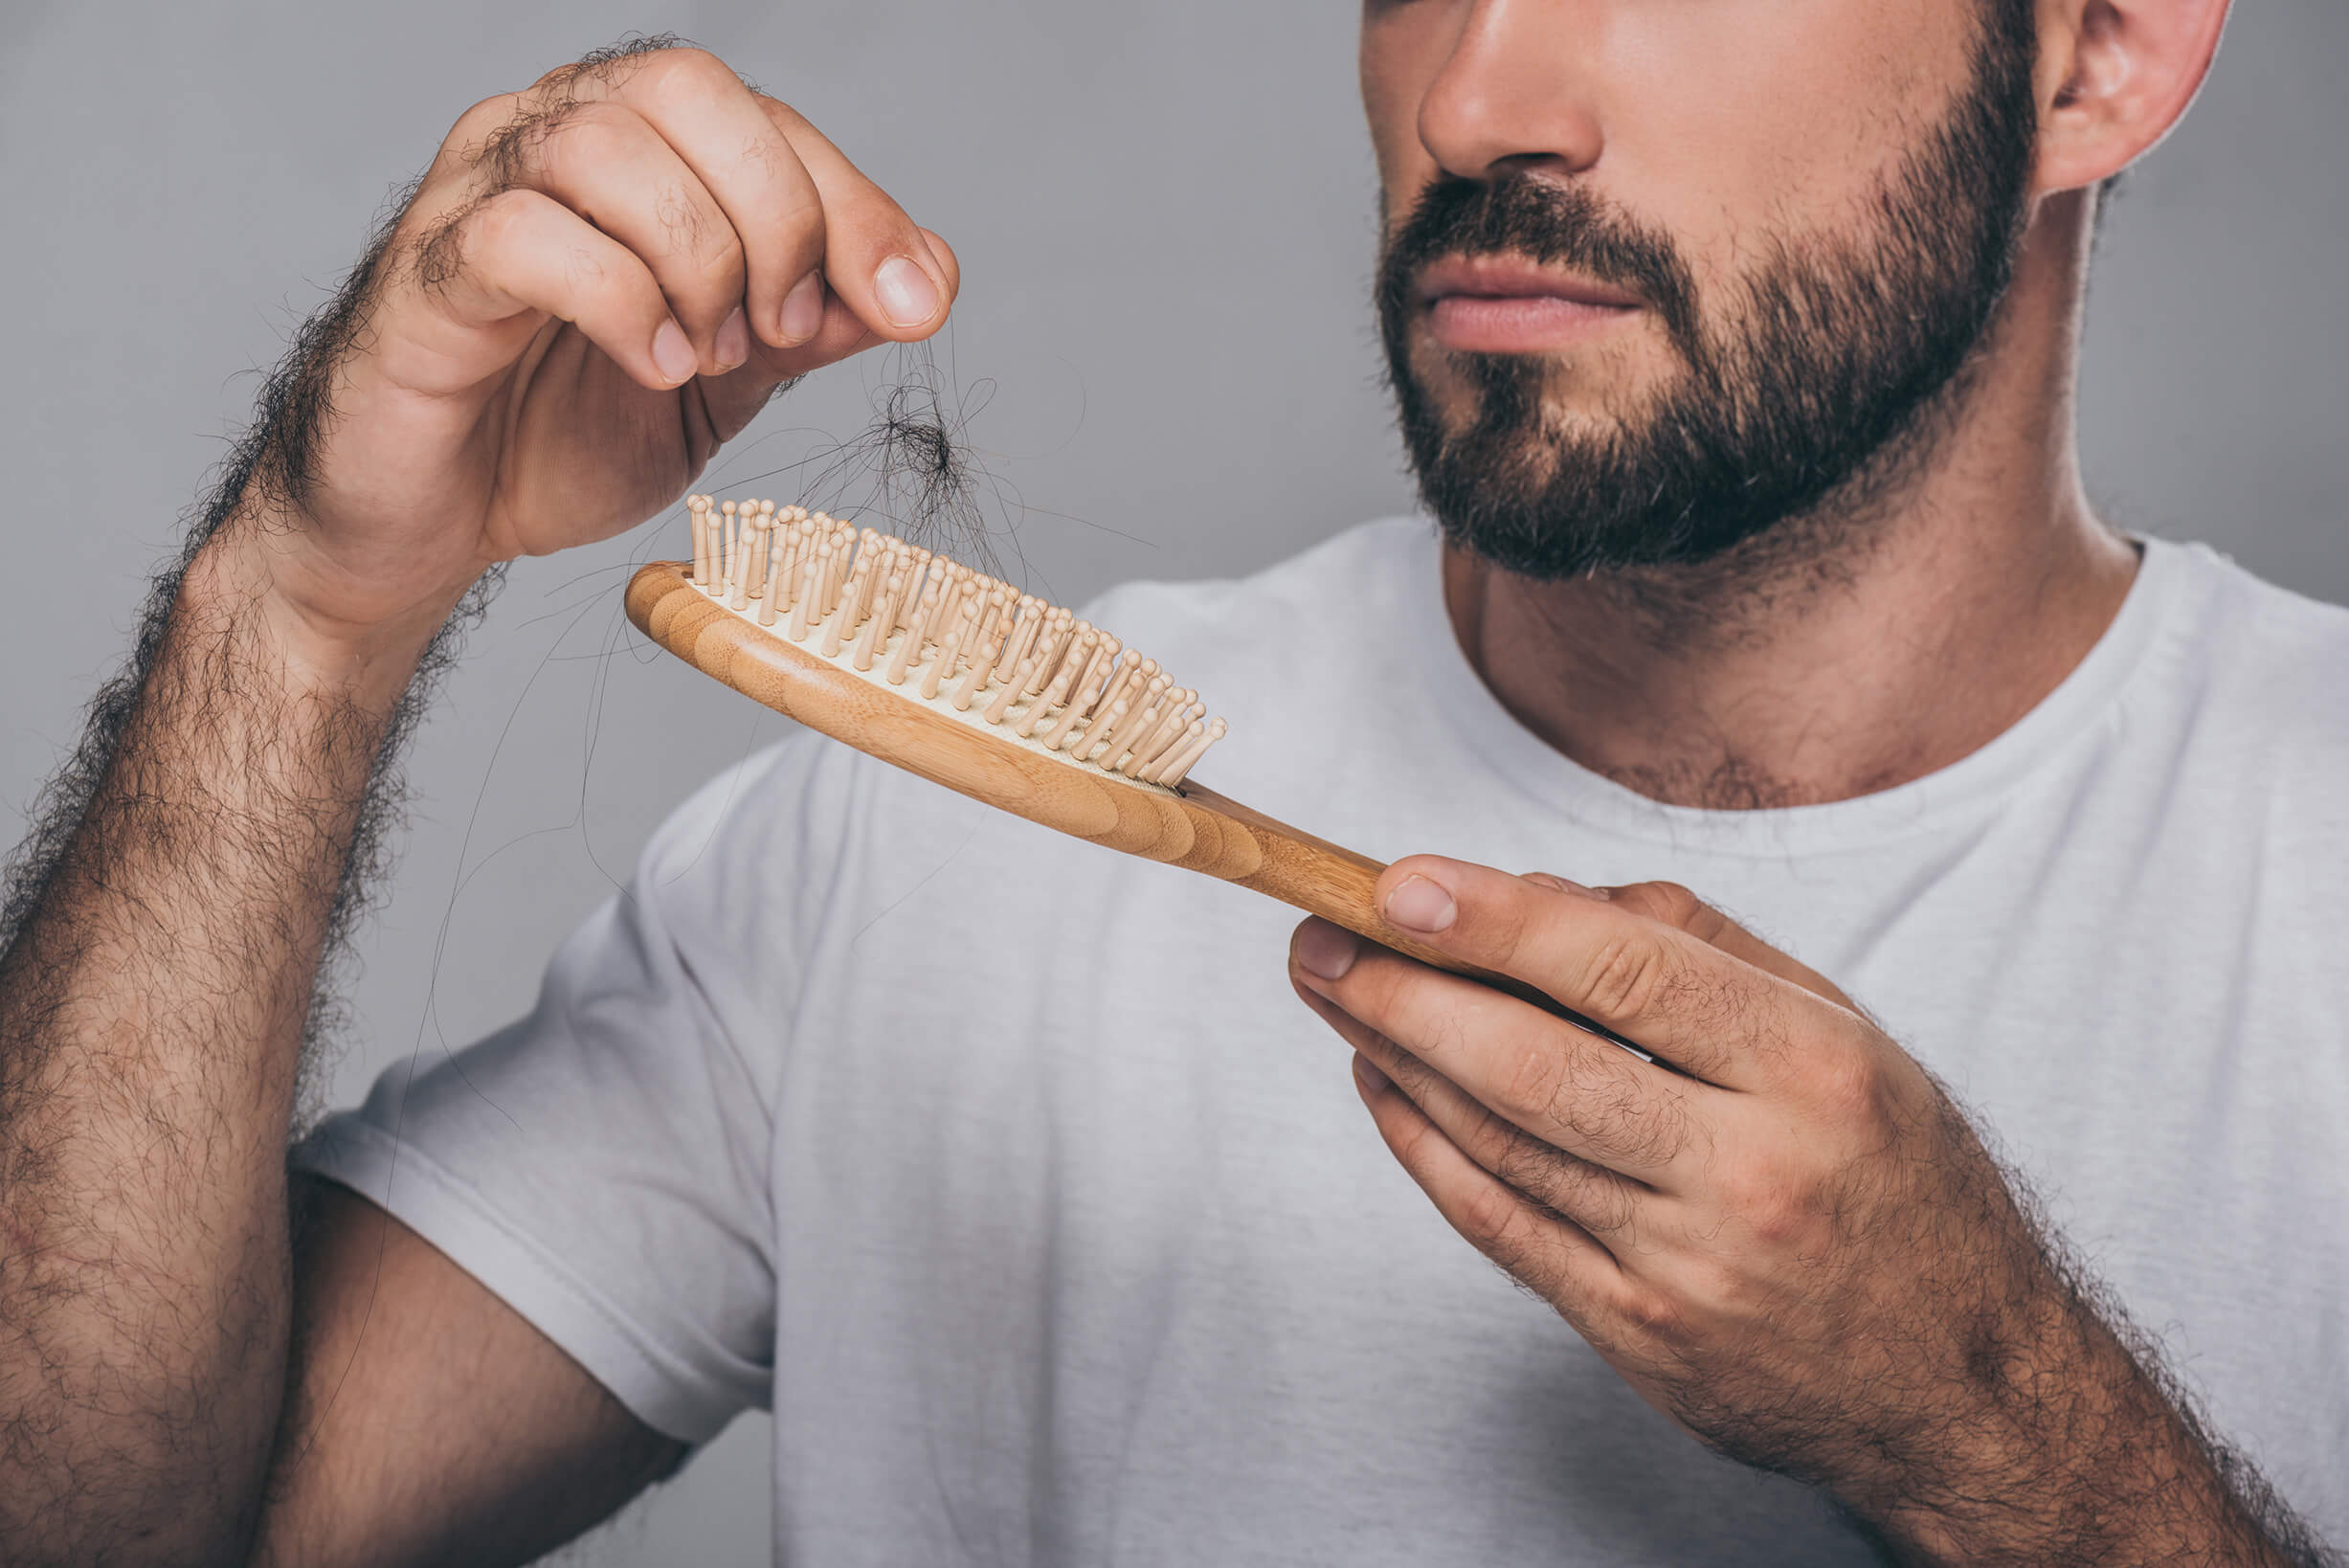 A close-up of a man picking out hairs from a hair brush